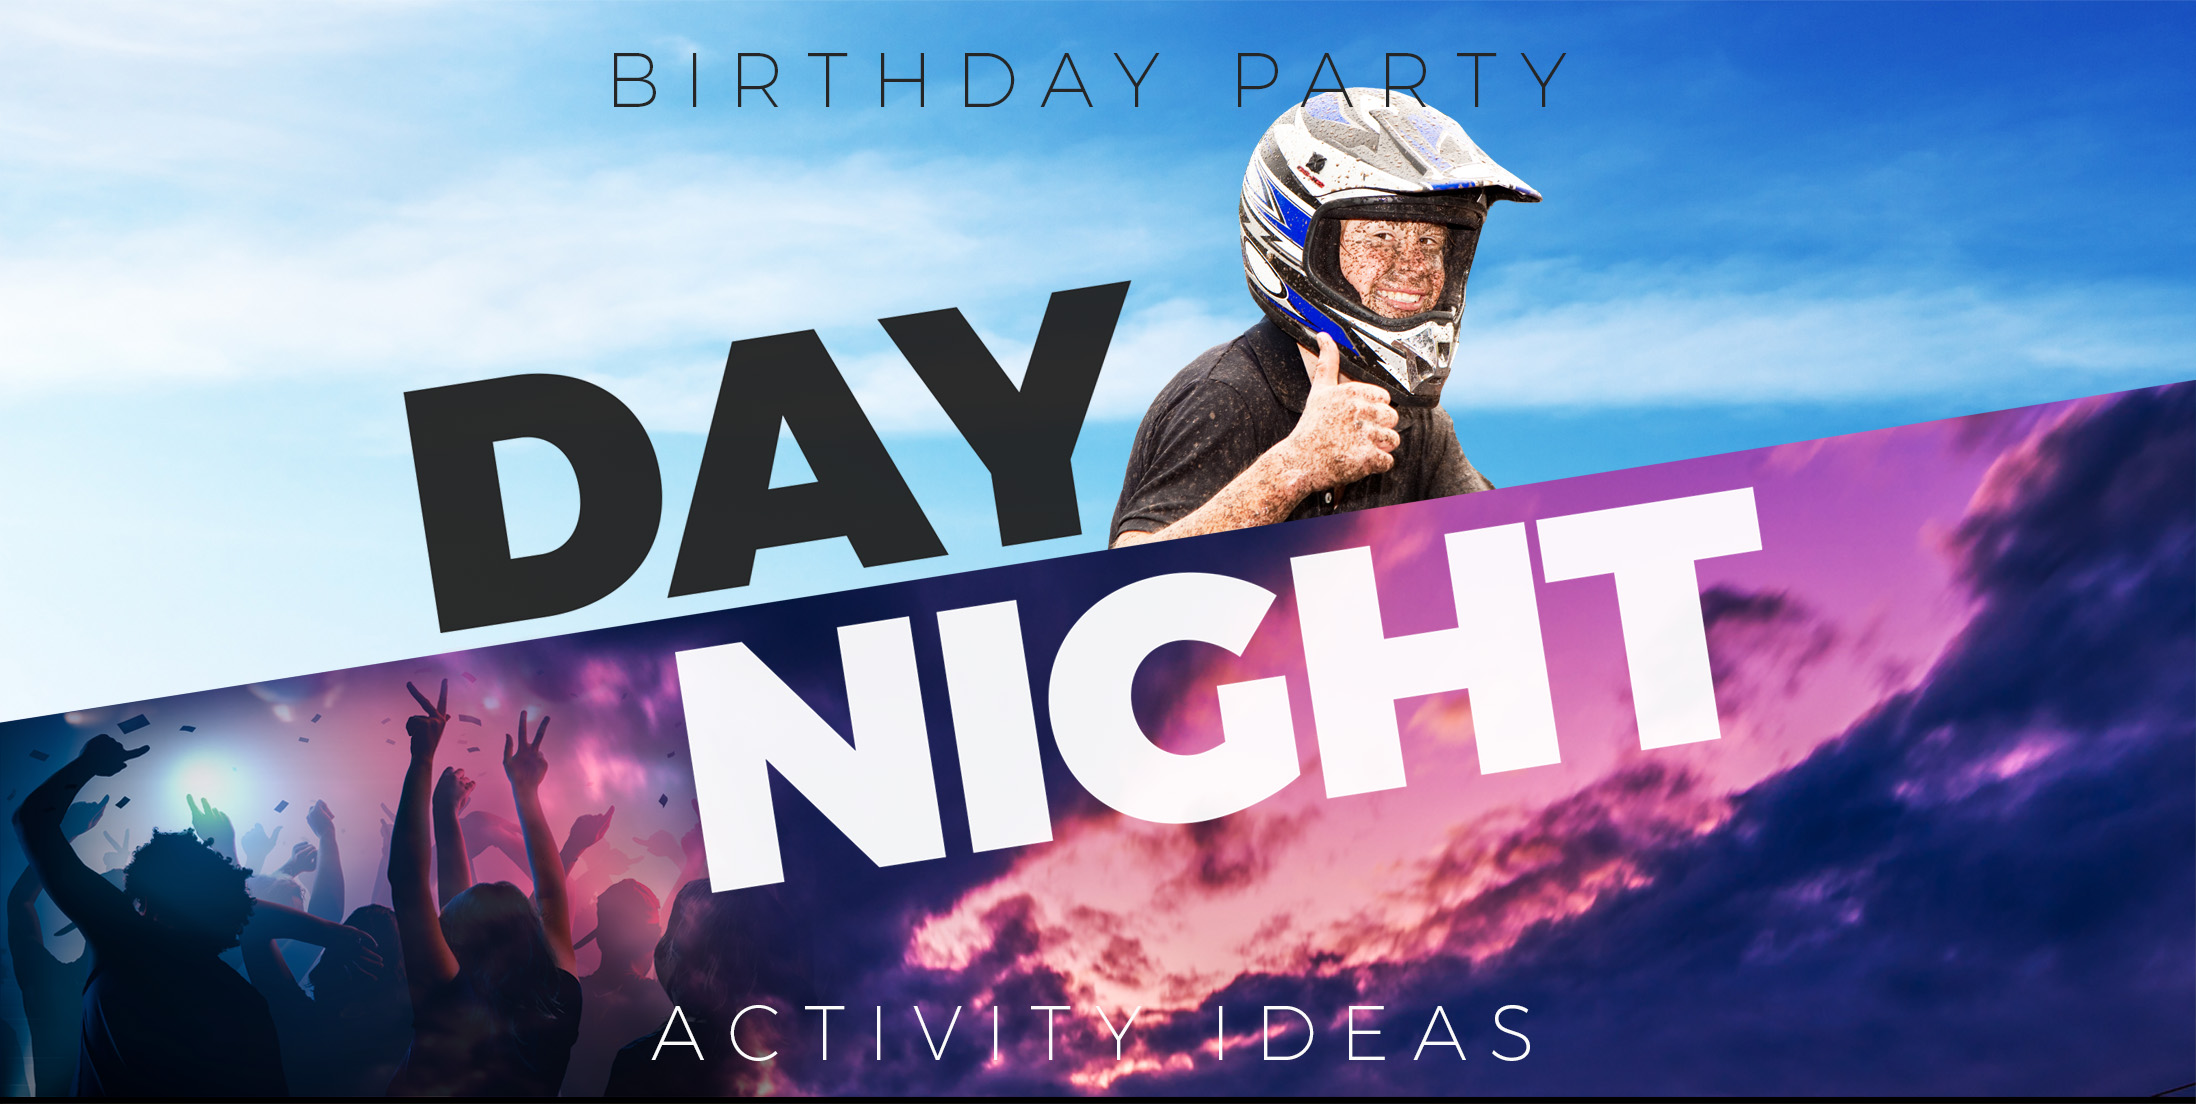 Birthday Party Activity Ideas for Day and Night